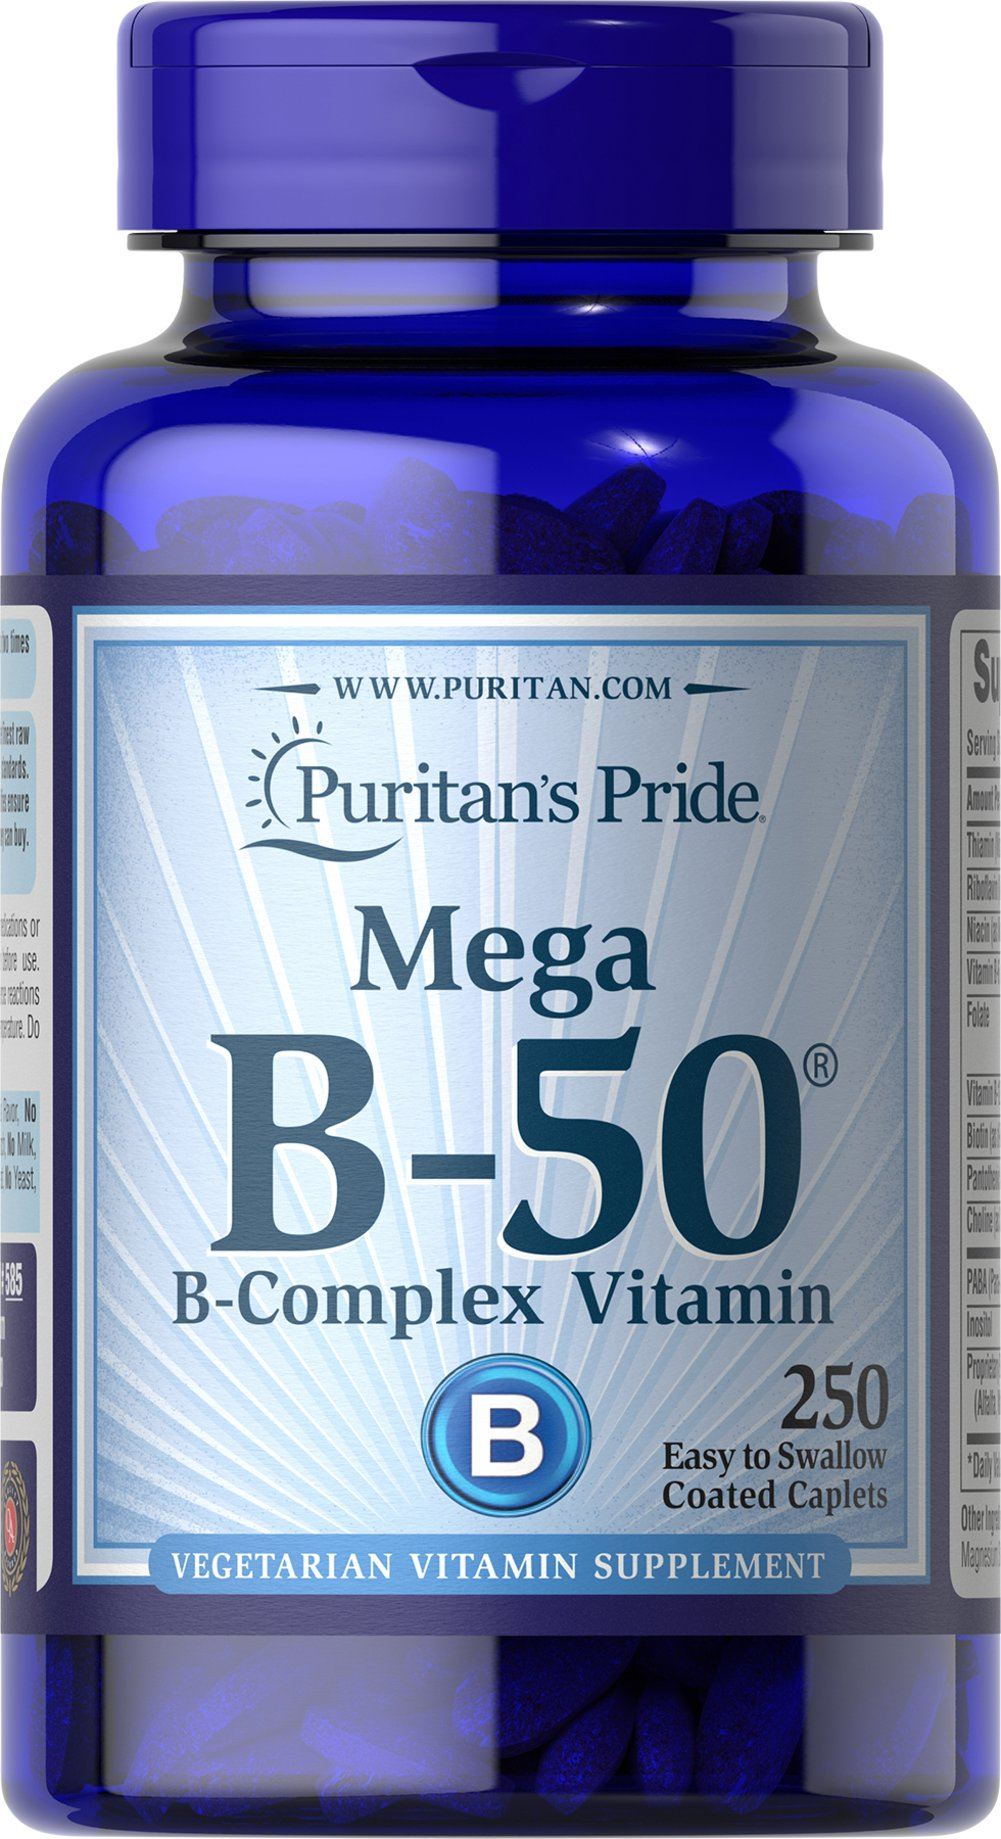 Vitamin B-50® Complex <p>The Vitamin B-50® Complex is made up of several vitamins that work well together to support nervous system health.** B Complex vitamins also promote energy metabolism.** Each nutrient in the Vitamin B Complex performs a unique role in maintaining proper metabolic functioning and is essential for well being.**</p> 250 Caplets 50 mg $30.39